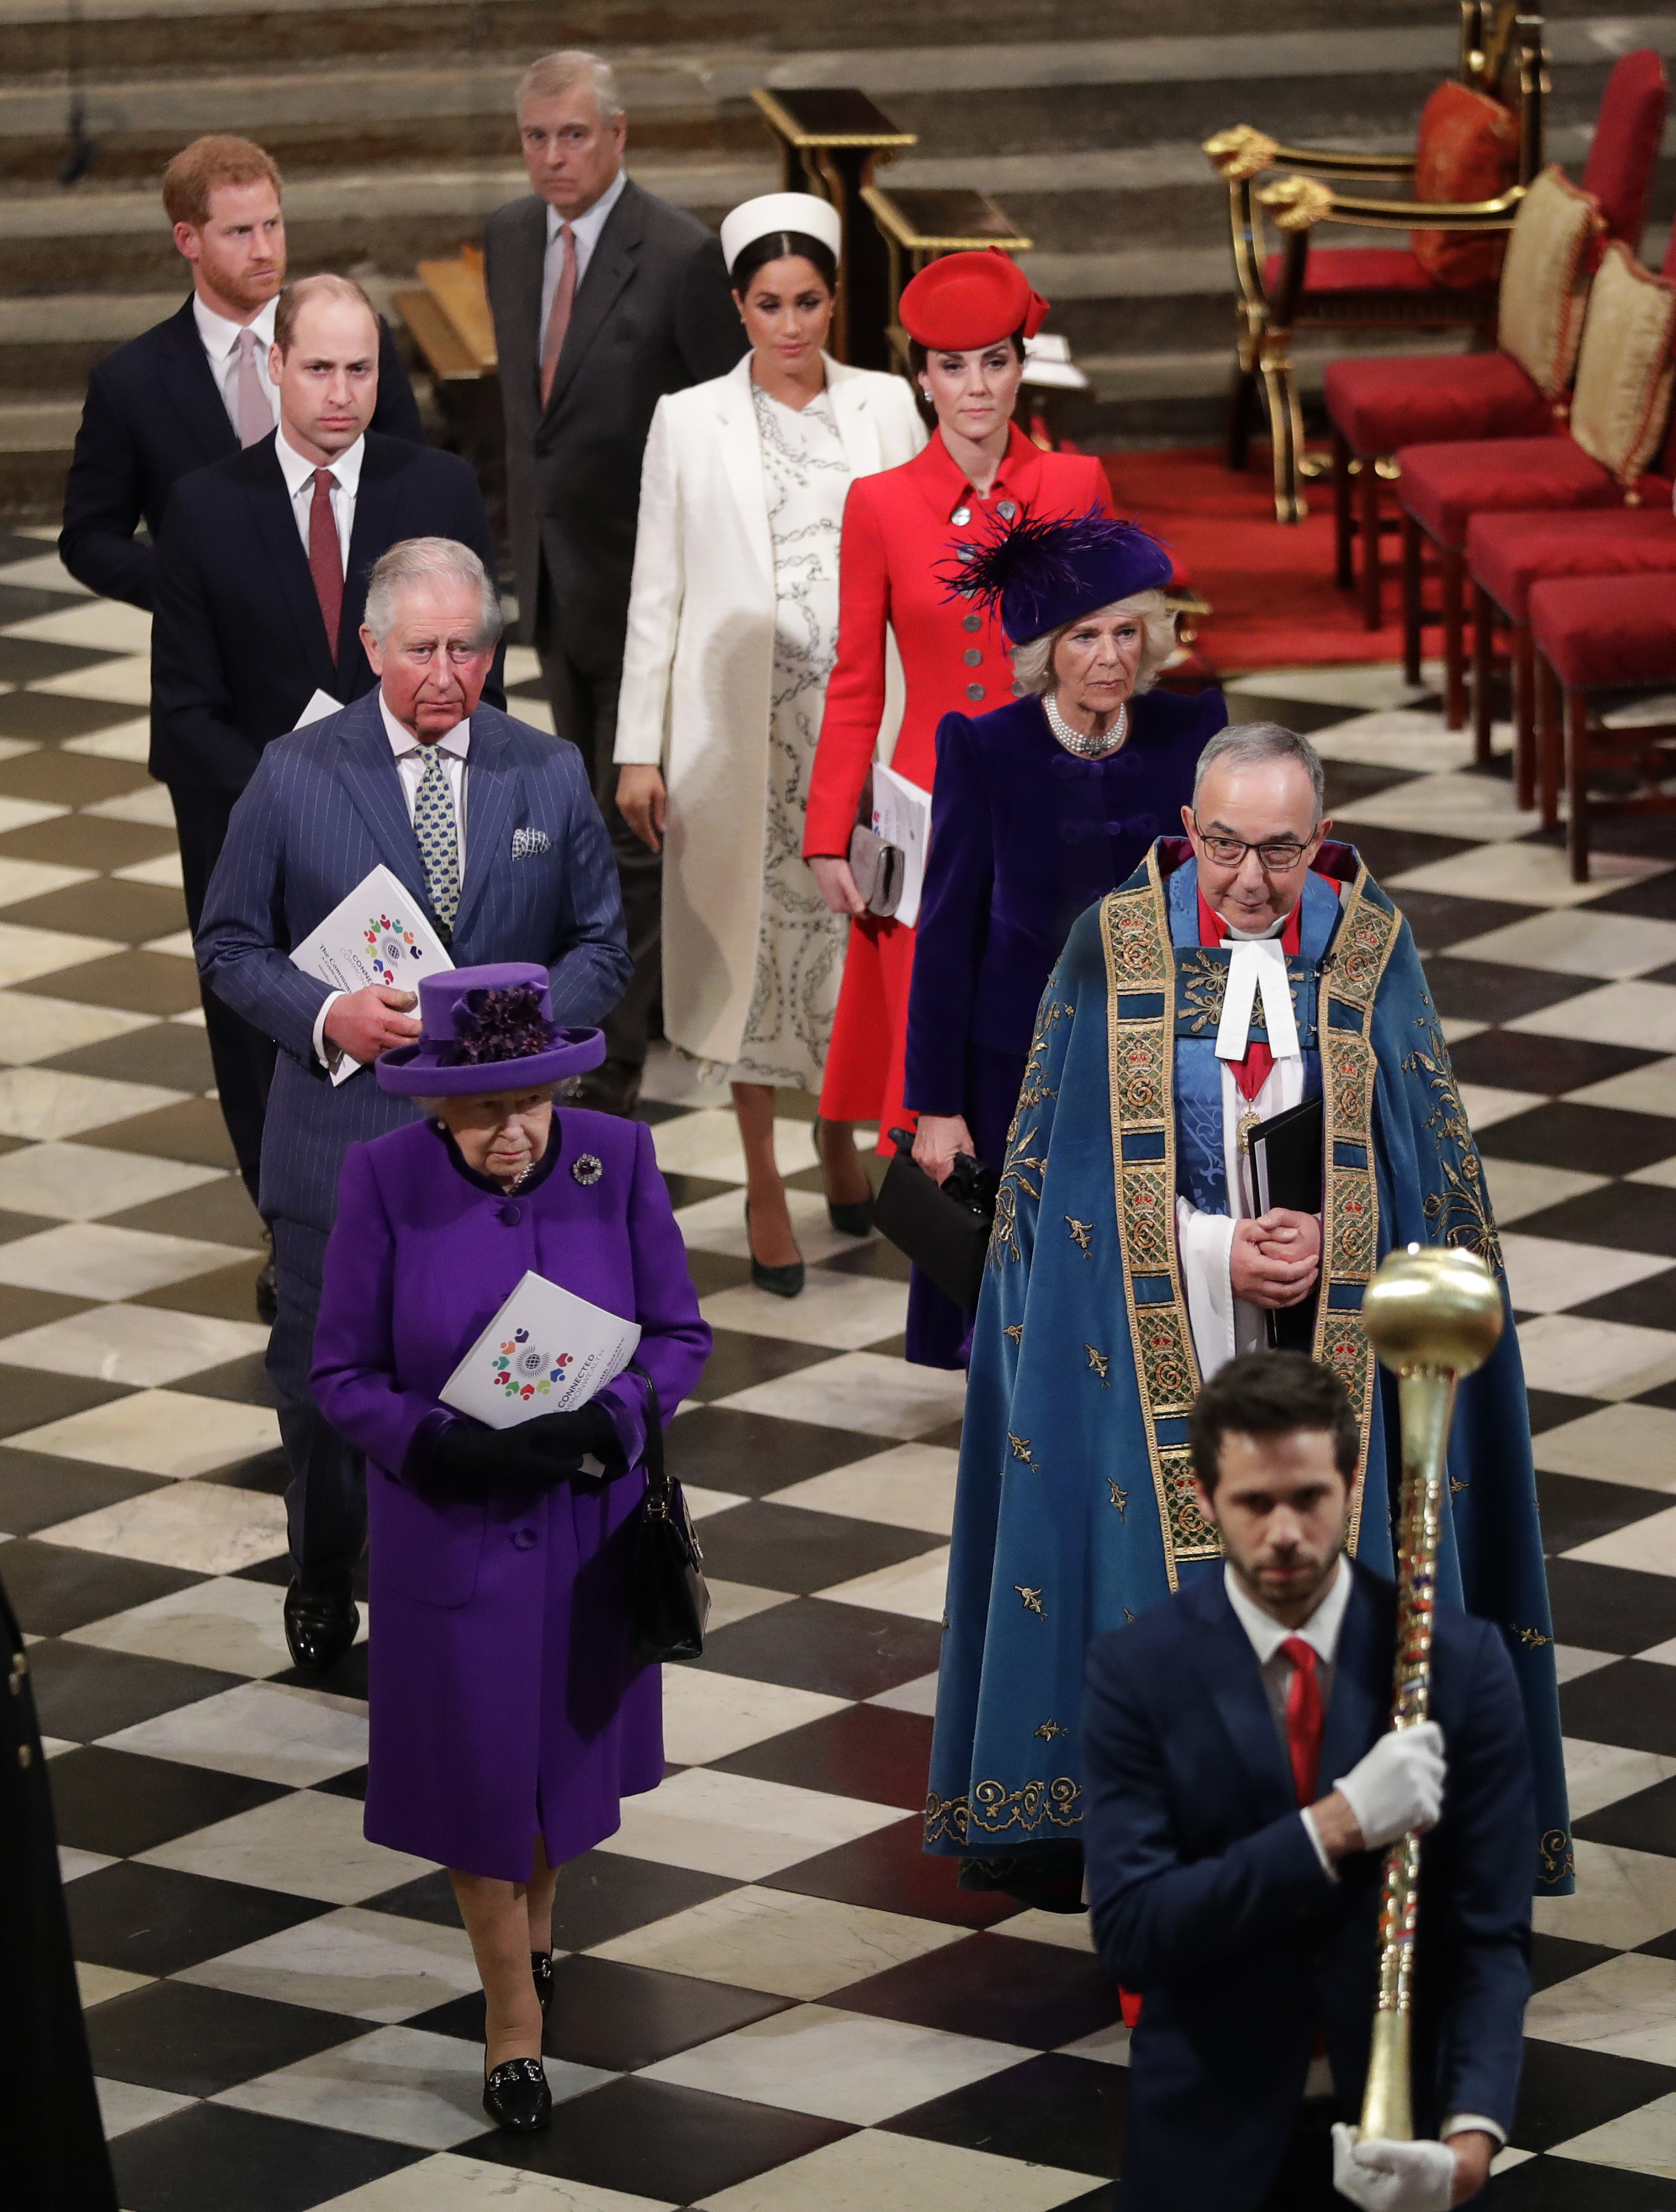 The royal family leaving theCommonwealth Day service.